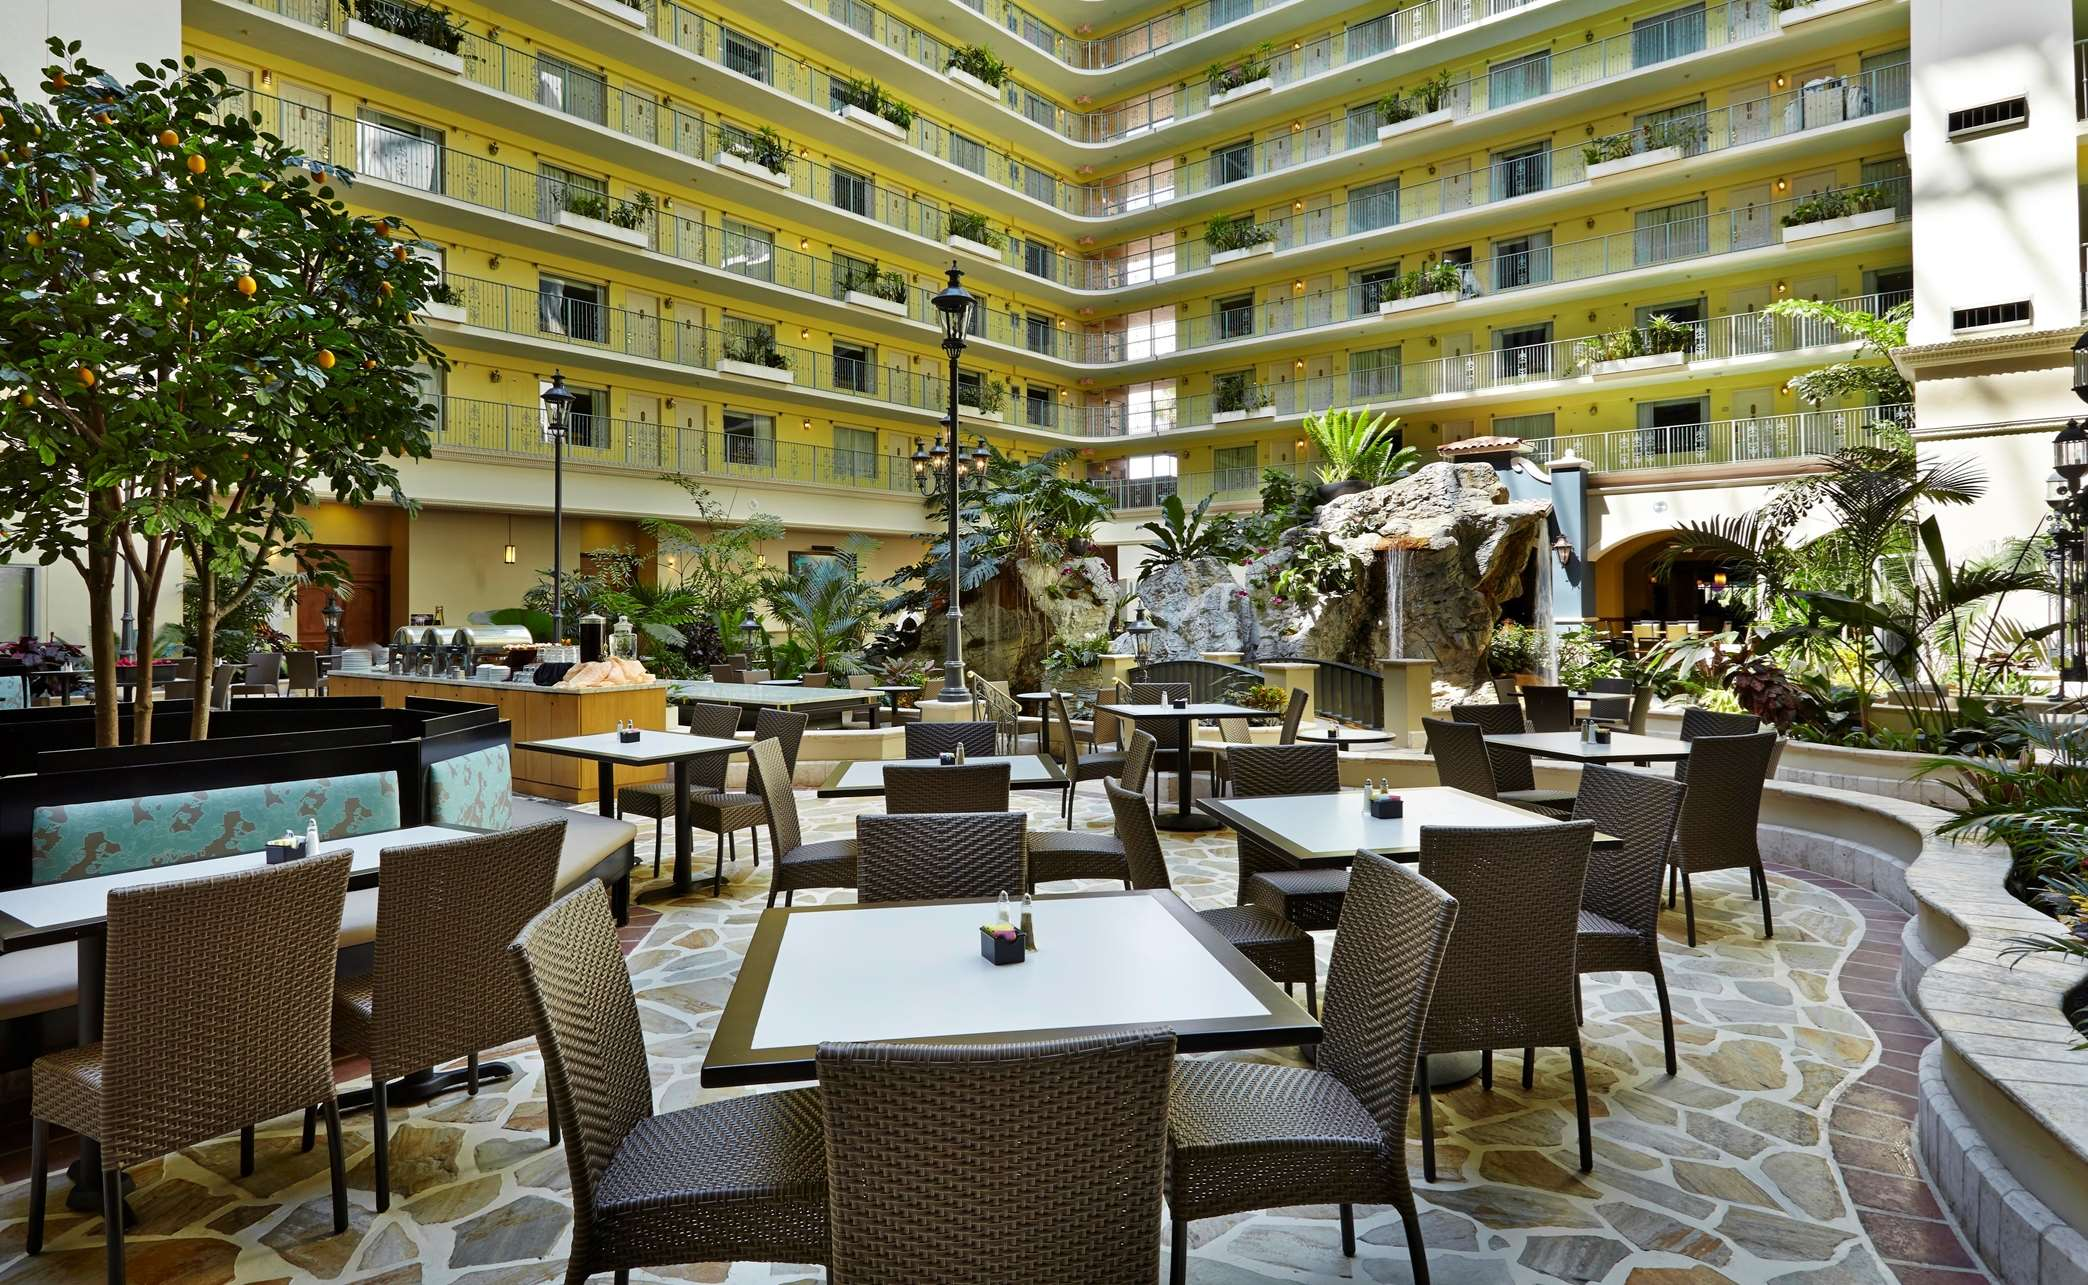 Embassy Suites by Hilton Fort Lauderdale 17th Street image 4